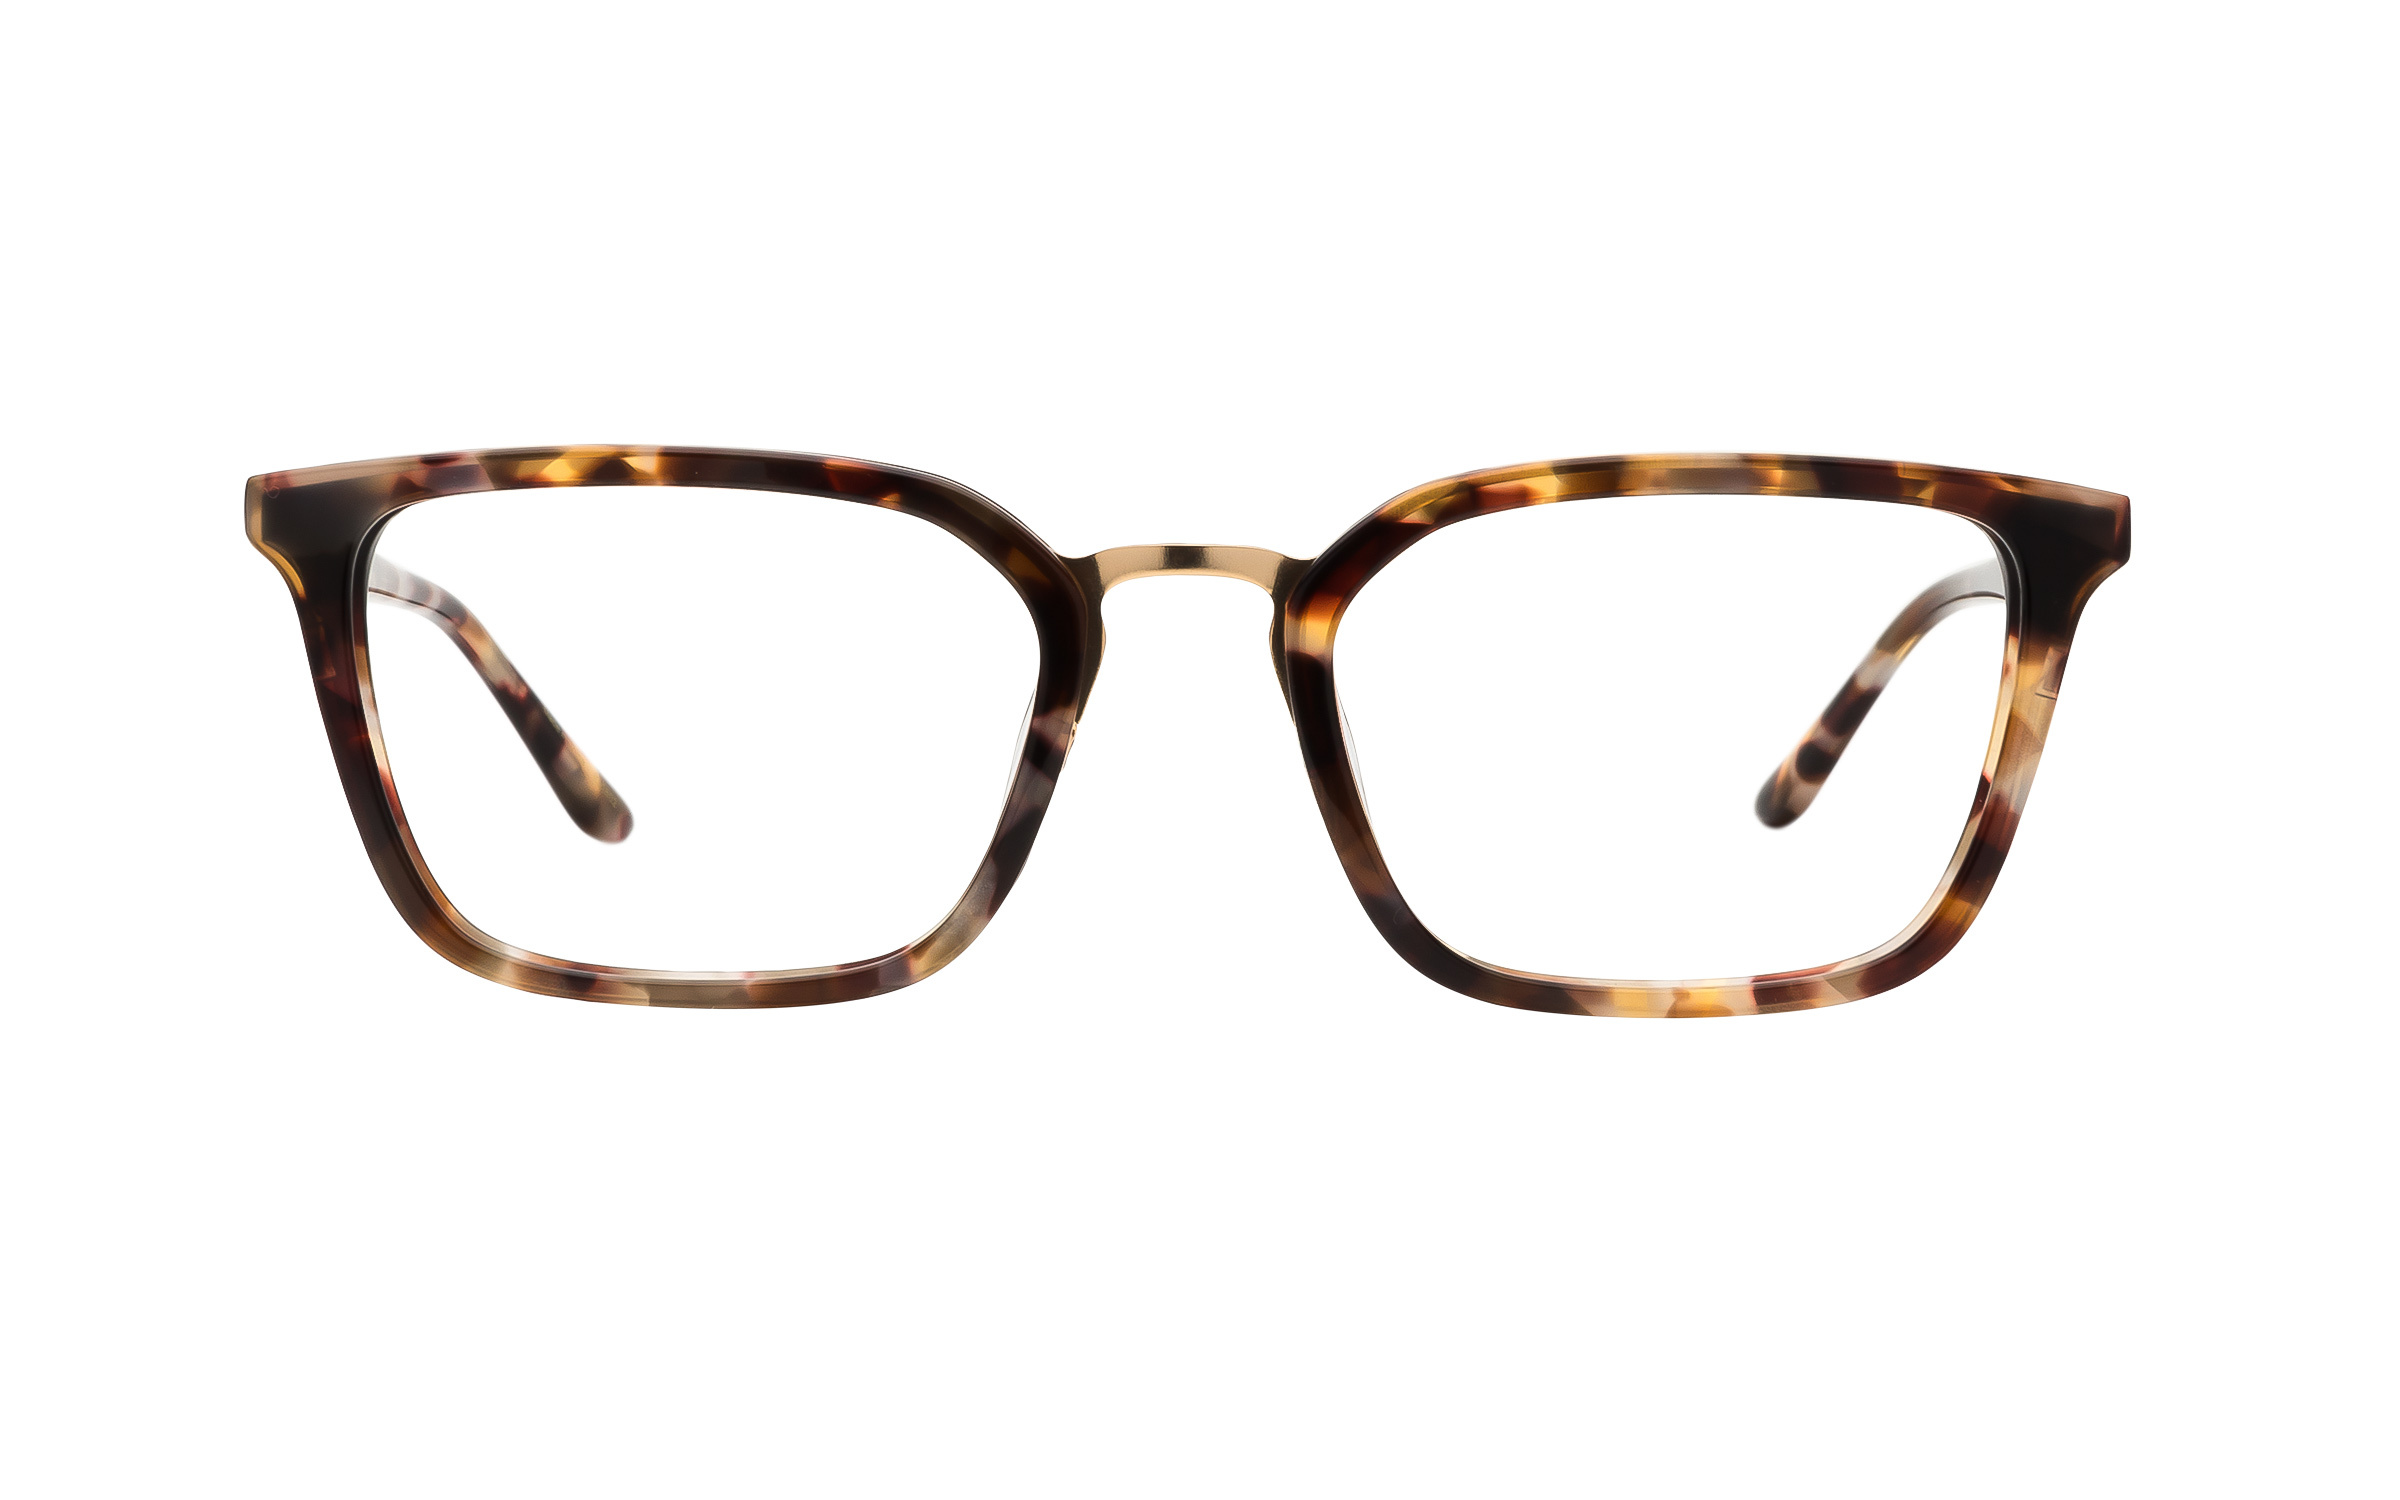 Kam Dhillon Women's Glasses Brown/Tortoise Acetate/Metal Online Clearly